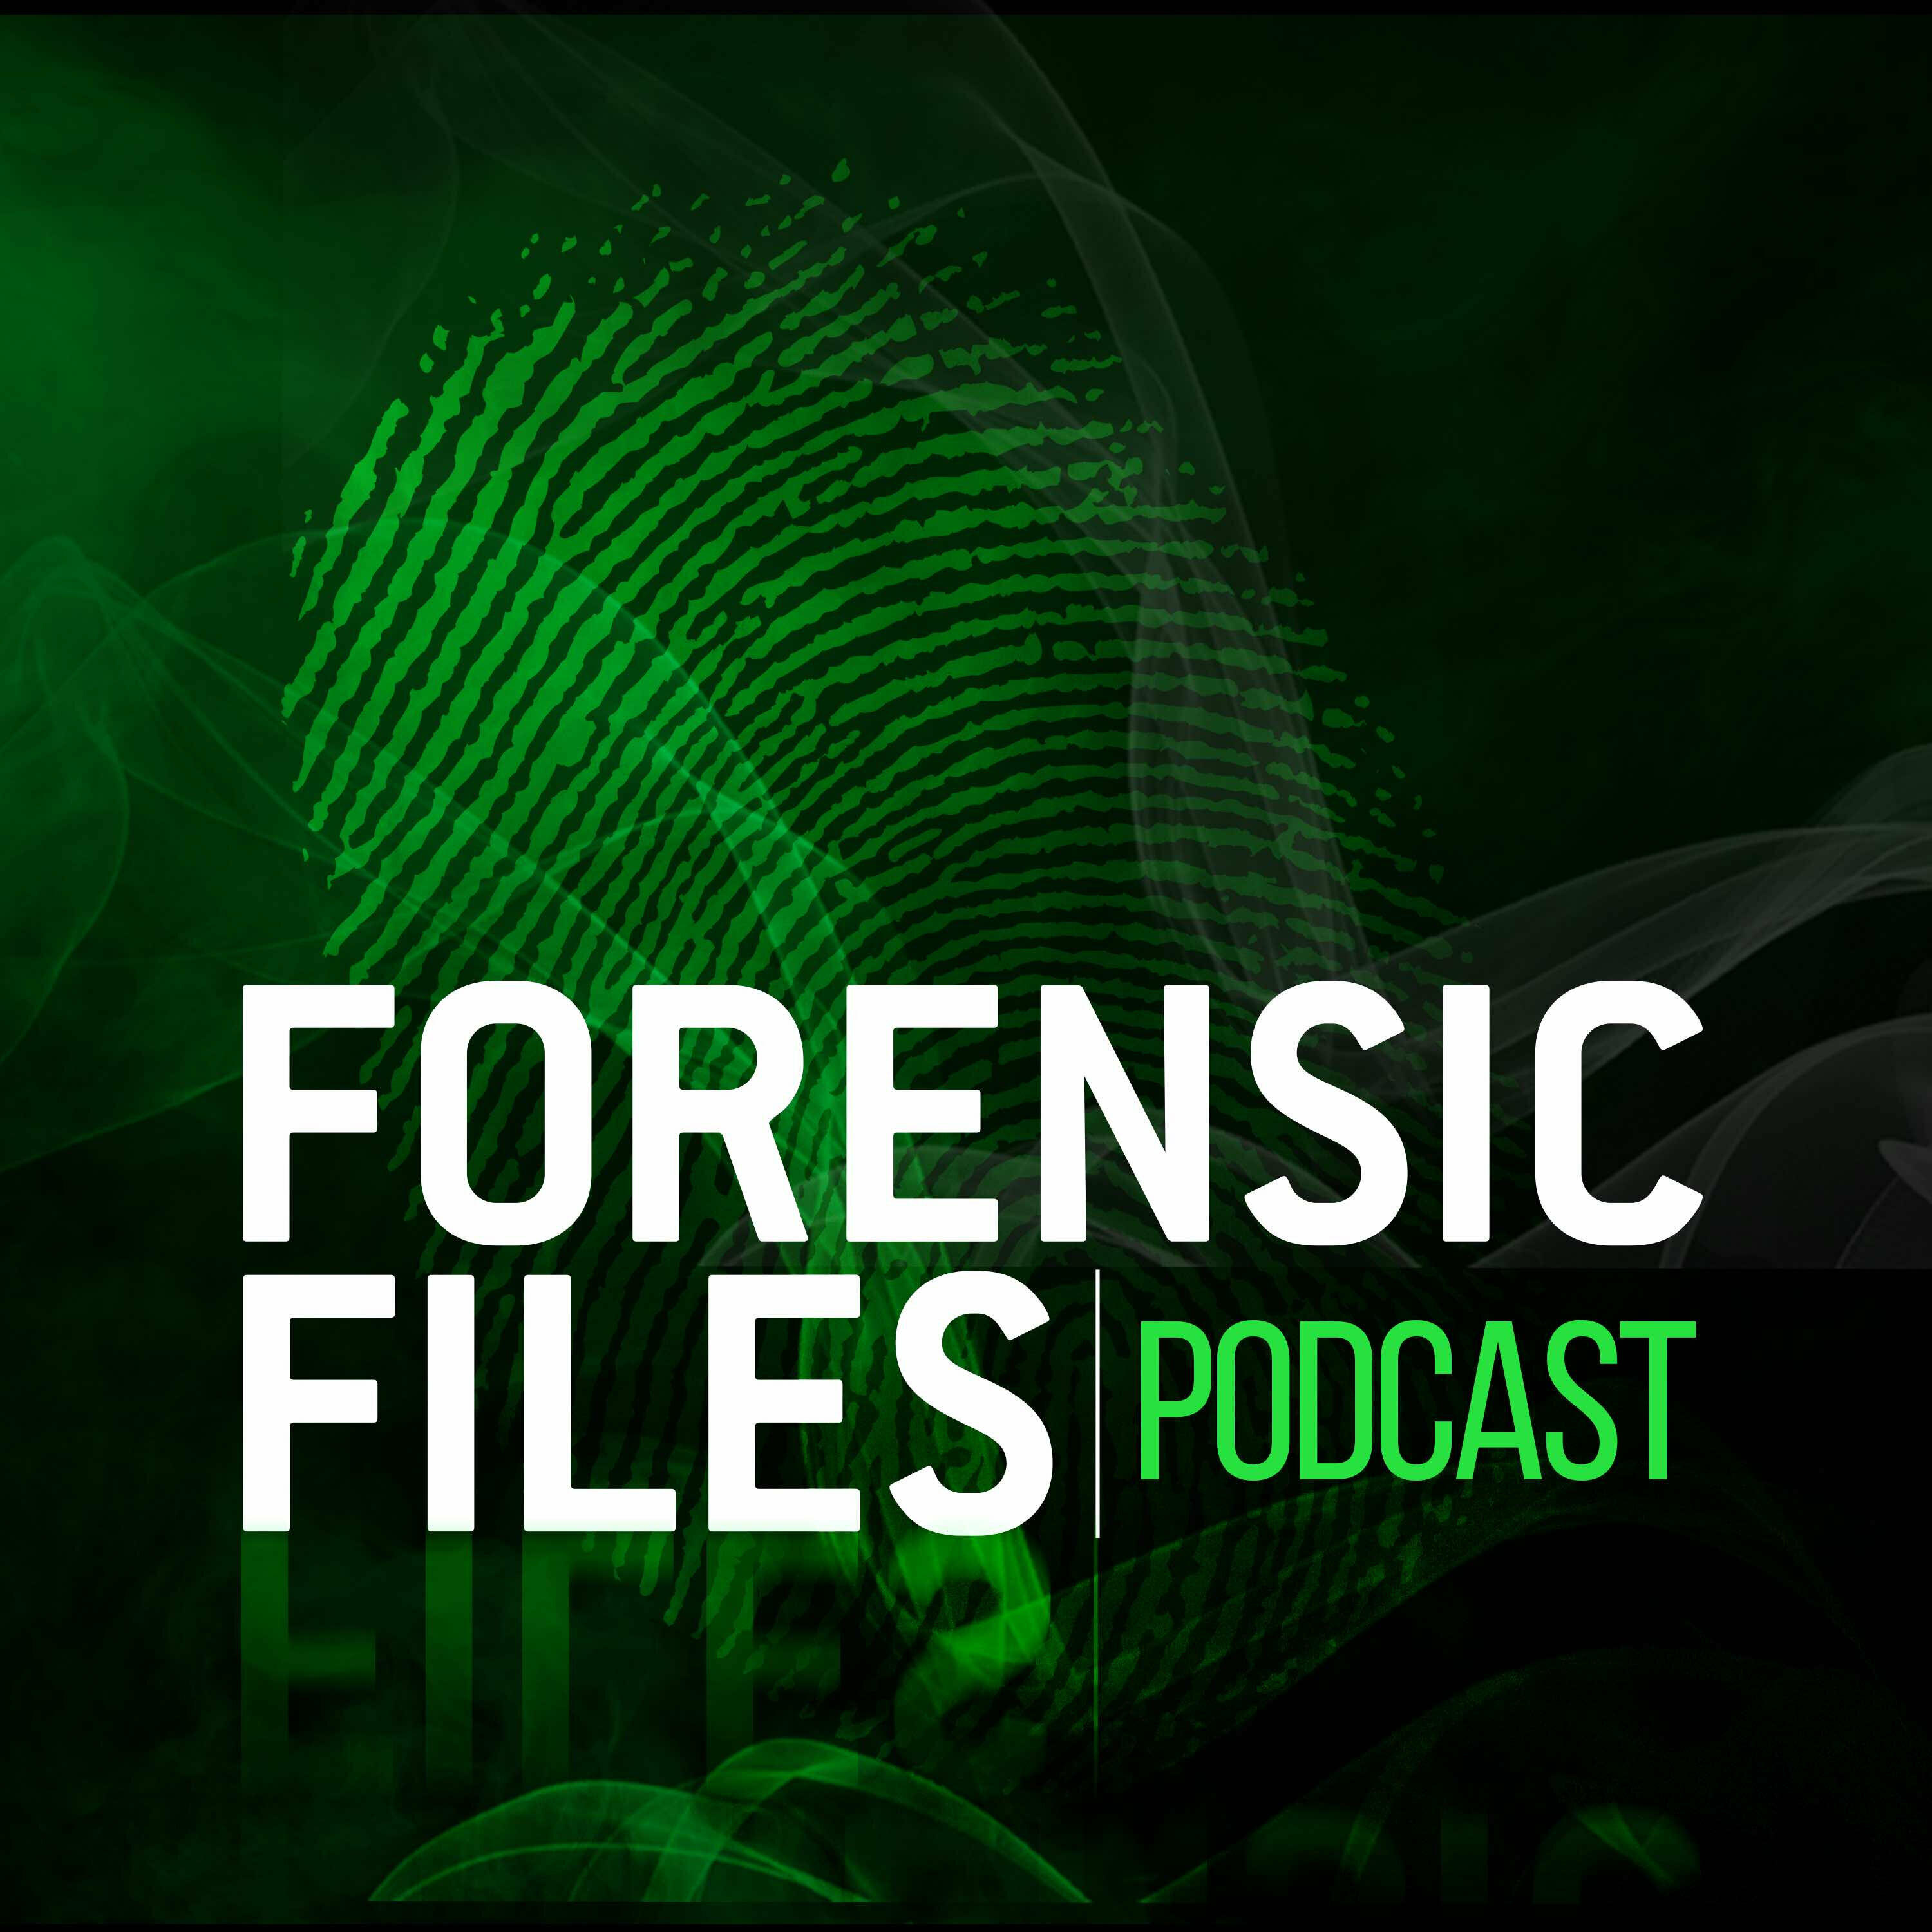 Listen Free to Forensic Files on iHeartRadio Podcasts